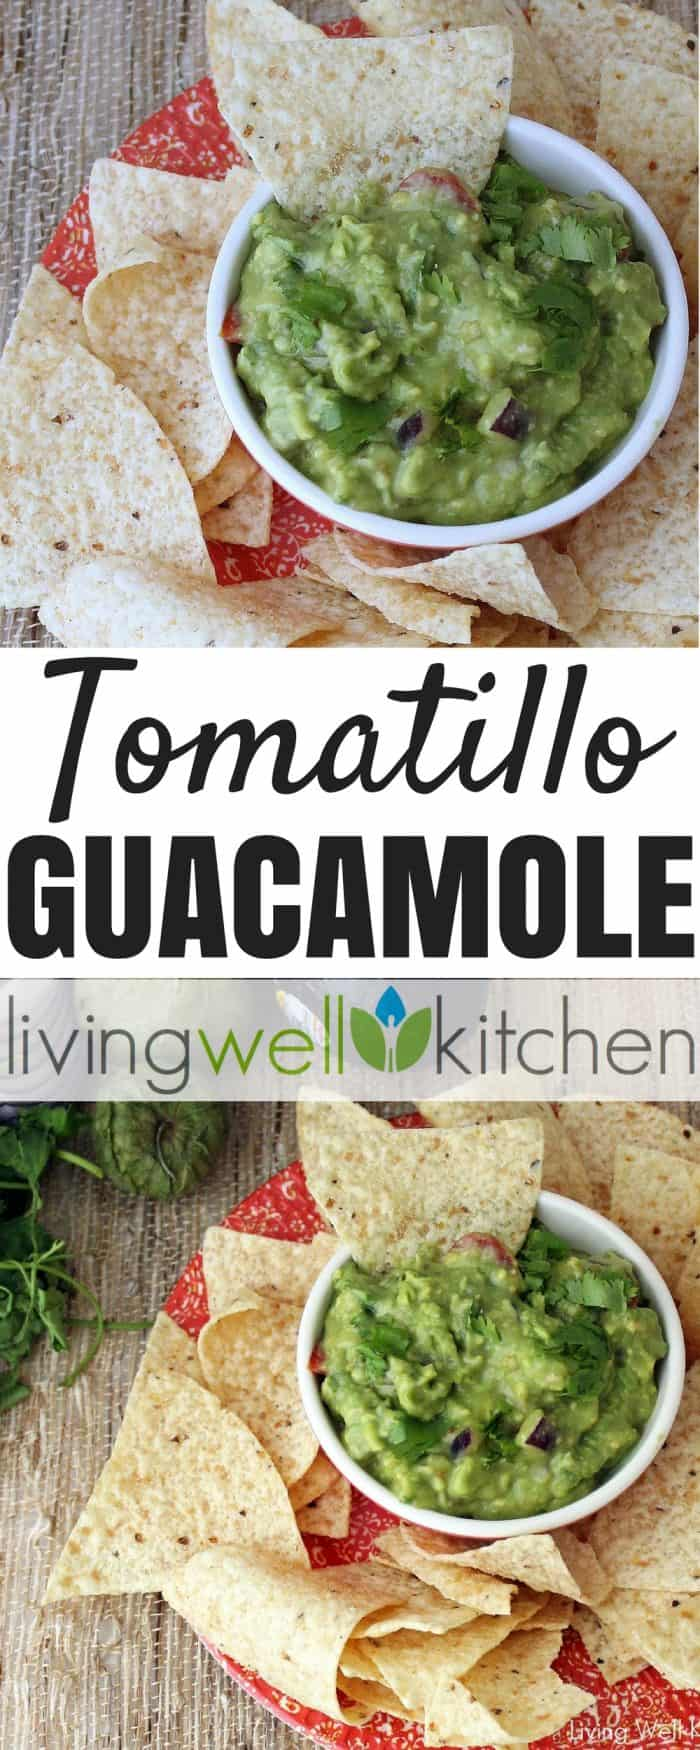 Tomatillo Guacamole from Living Well Kitchen is a tasty guacamole full of roasted tomatillos & jalapeños for extra flavor and nutrients. Gluten free, dairy free, vegan appetizer recipe via @memeinge #guacamole #avocado #cincodemayo #tomatillo #veganrecipes #glutenfreerecipes #dairyfree #appetizer #dip